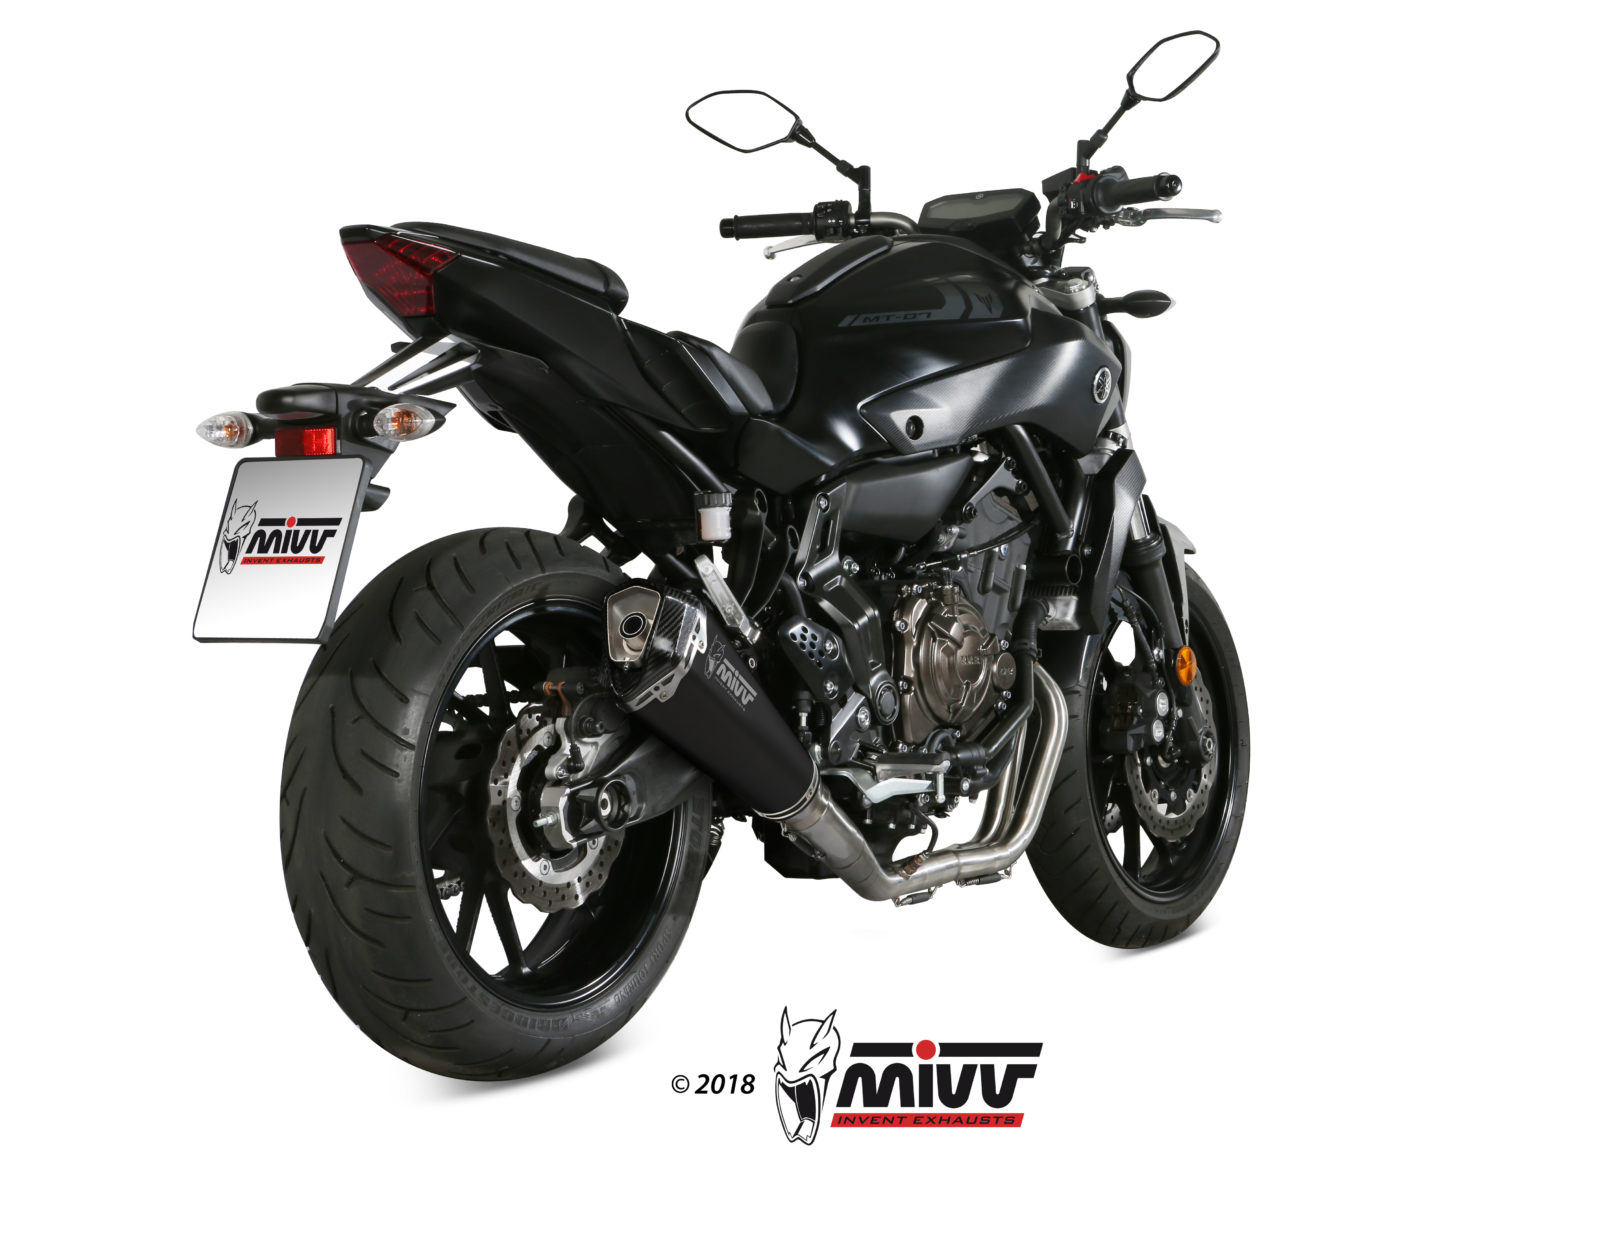 YAMAHA MT-07 Exhaust Mivv Delta Race Black stainless steel Y.045.LDRB